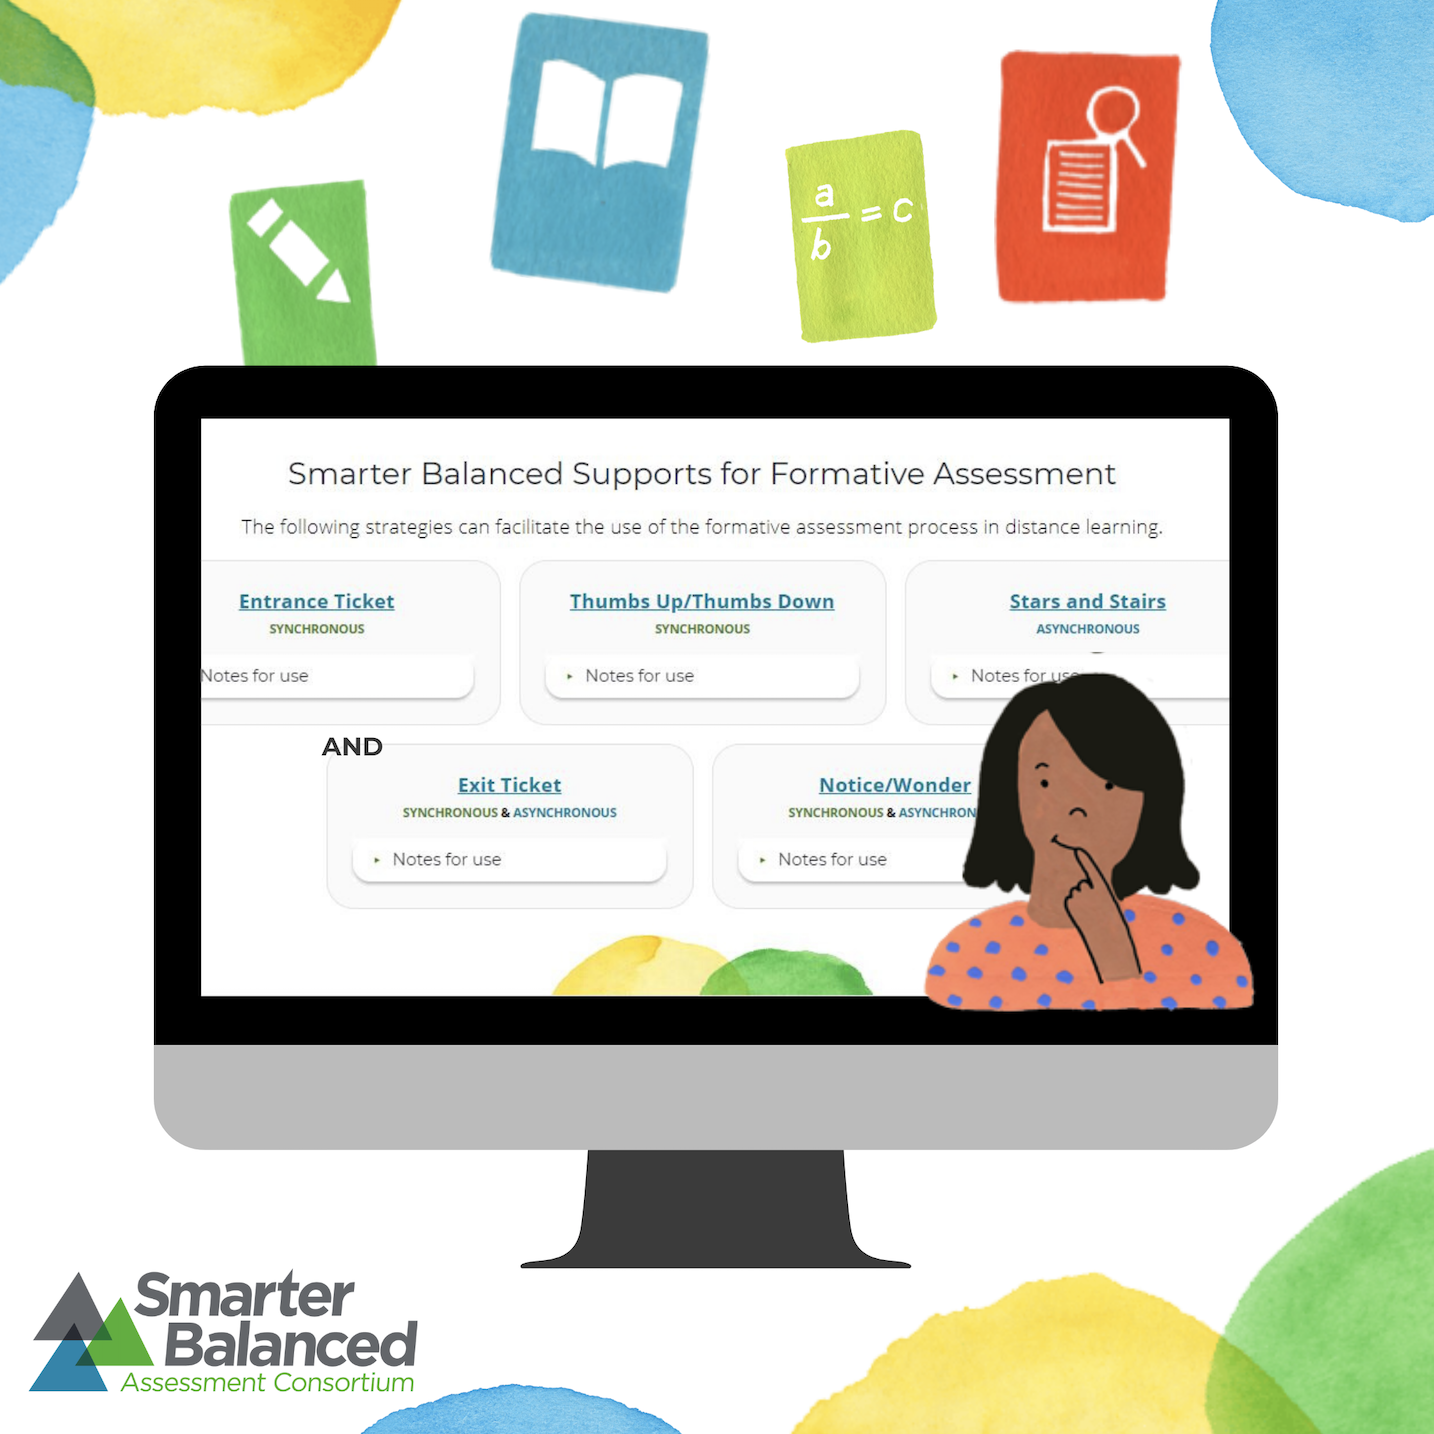 Illustration showing the Smarter Balanced supports for formative assessment strategies on a computer screen.